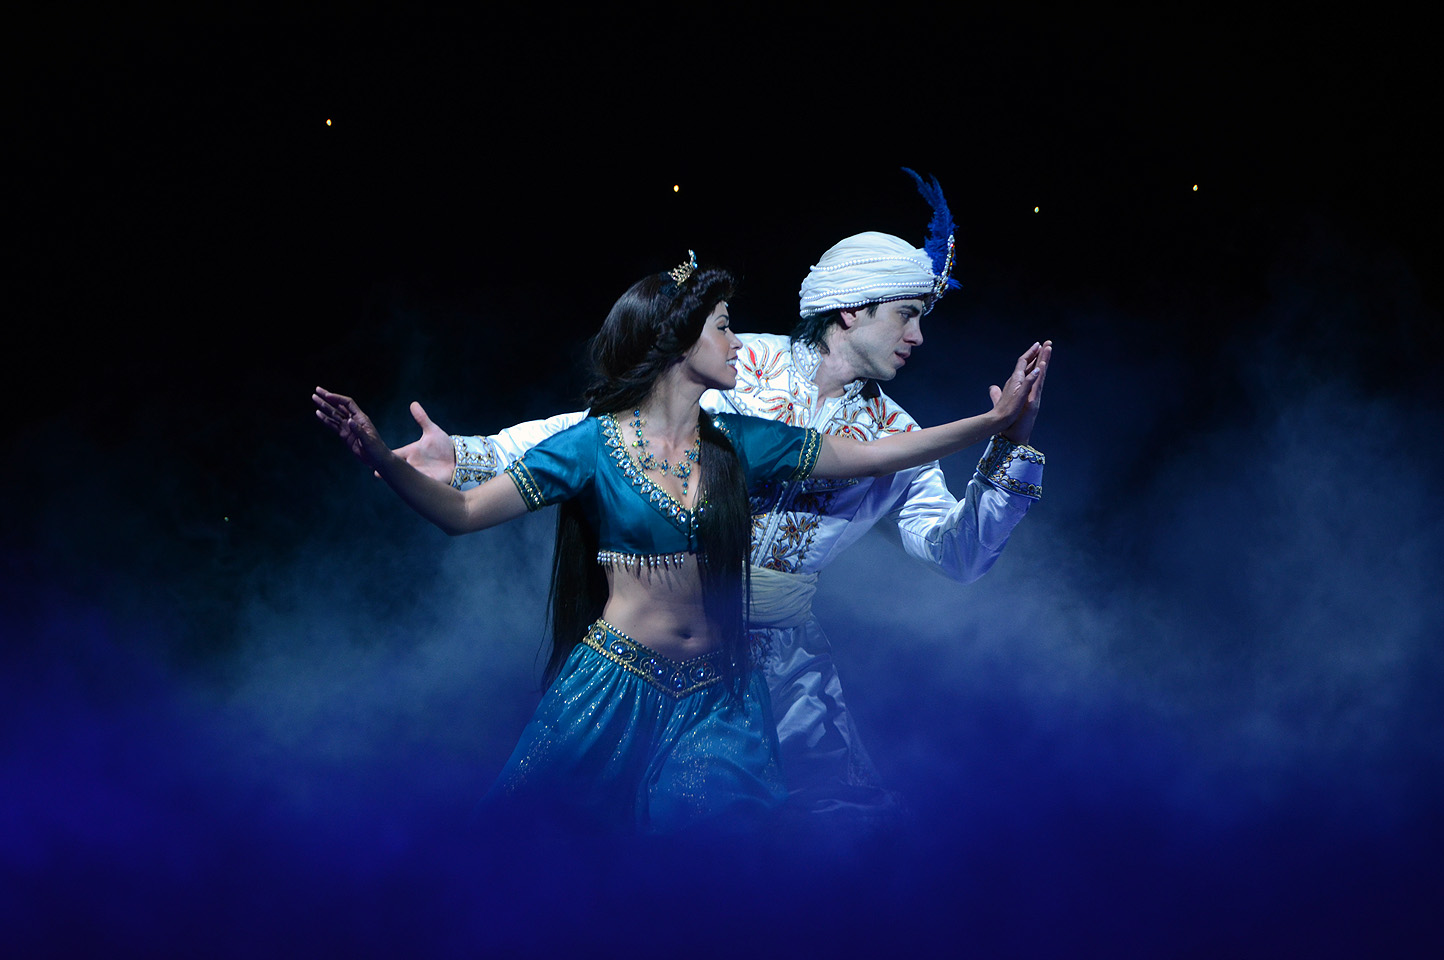 Aladdin Musical Fliegender Teppich Wie Jasmine Archives Beyond The Berm